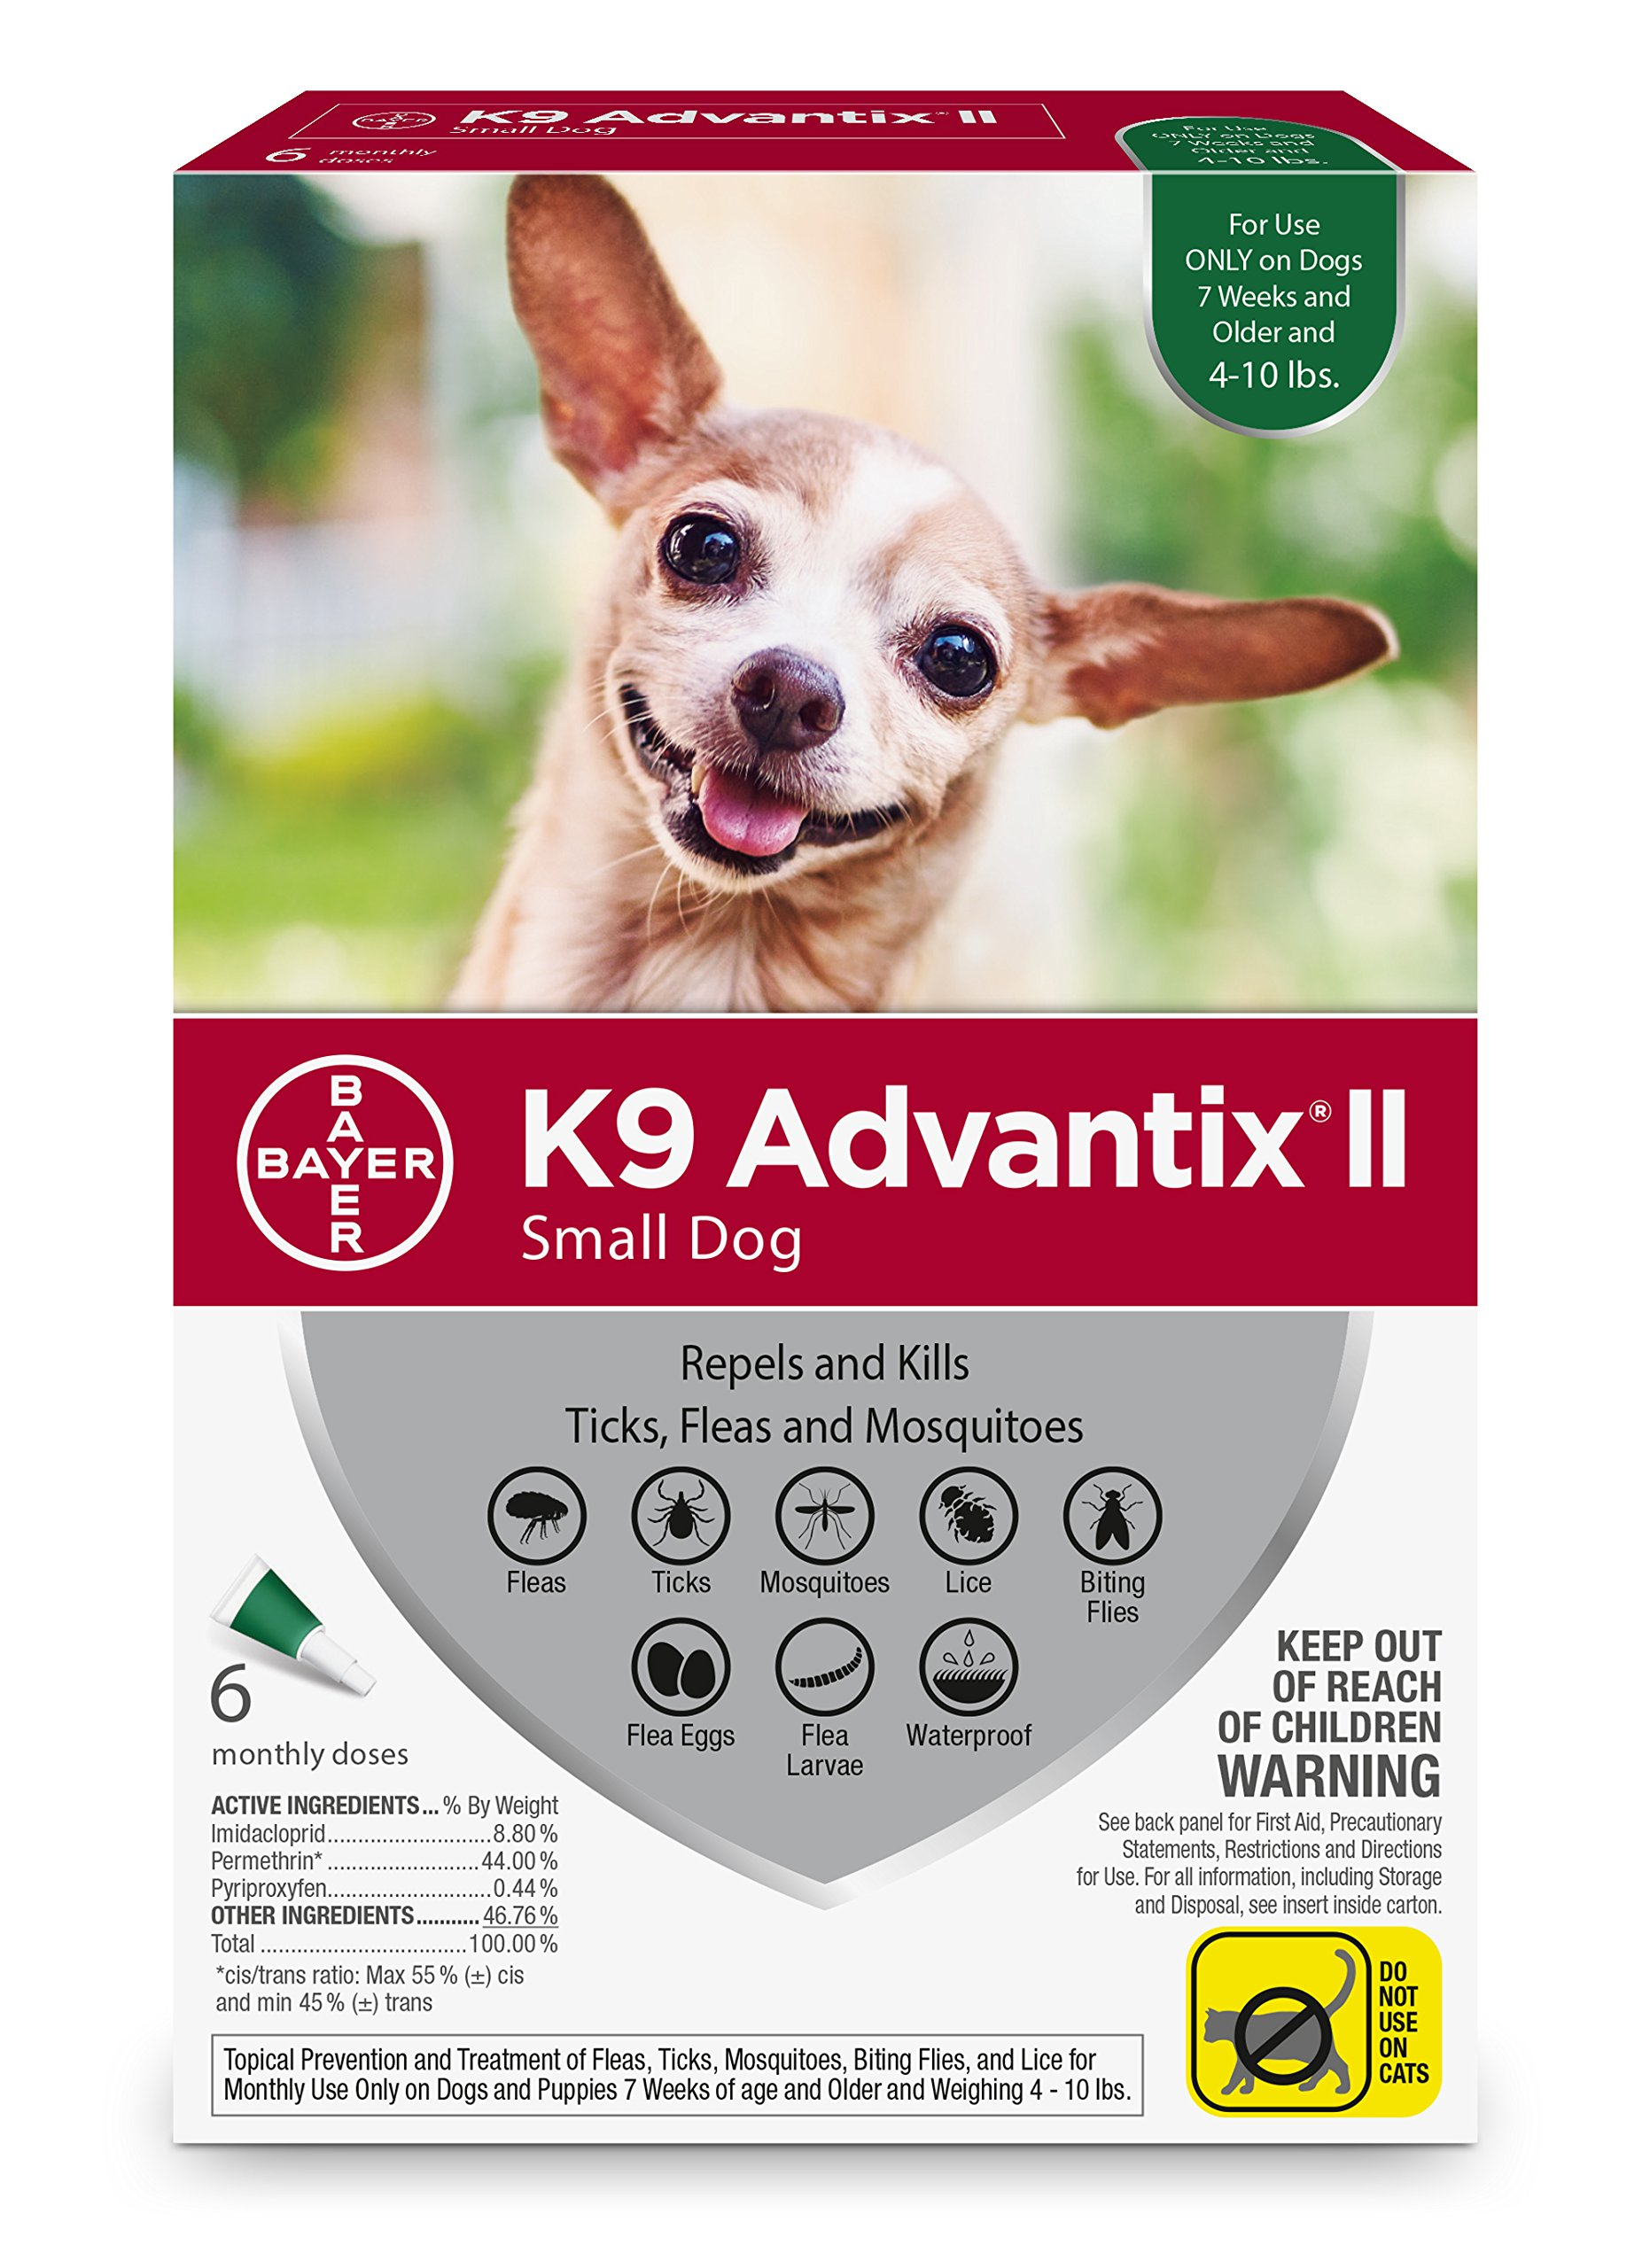 Bayer K9 Advantix II Flea, Tick and Mosquito Prevention for Small Dogs 4-10 lbs, 6 doses